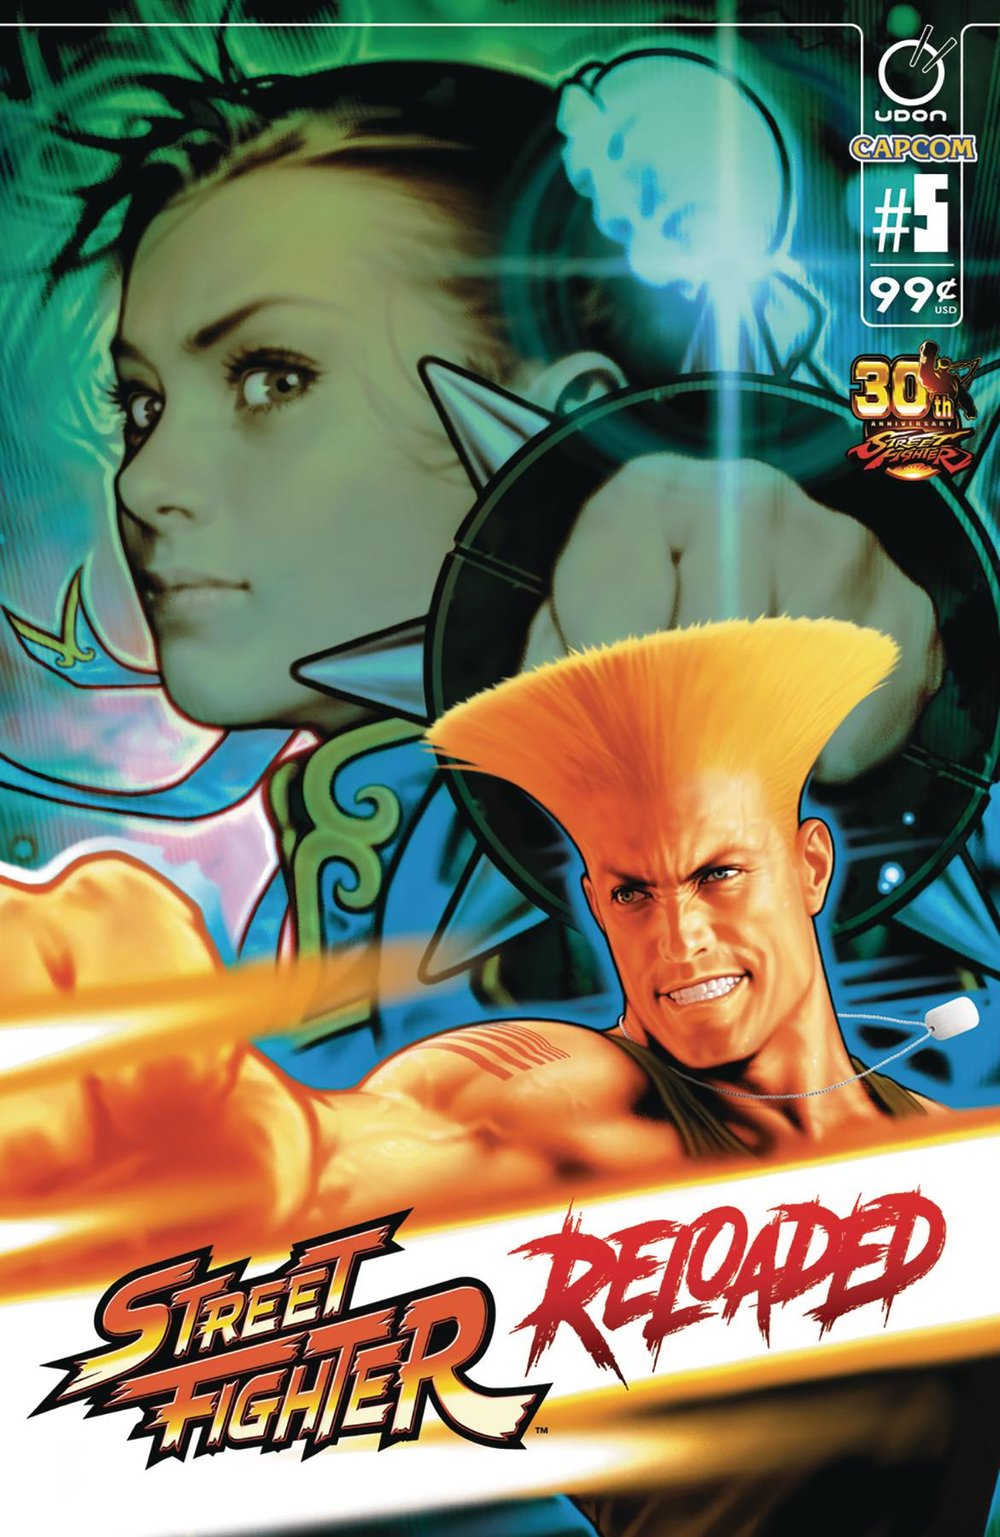 STREET FIGHTER RELOADED 5 of 6.jpg